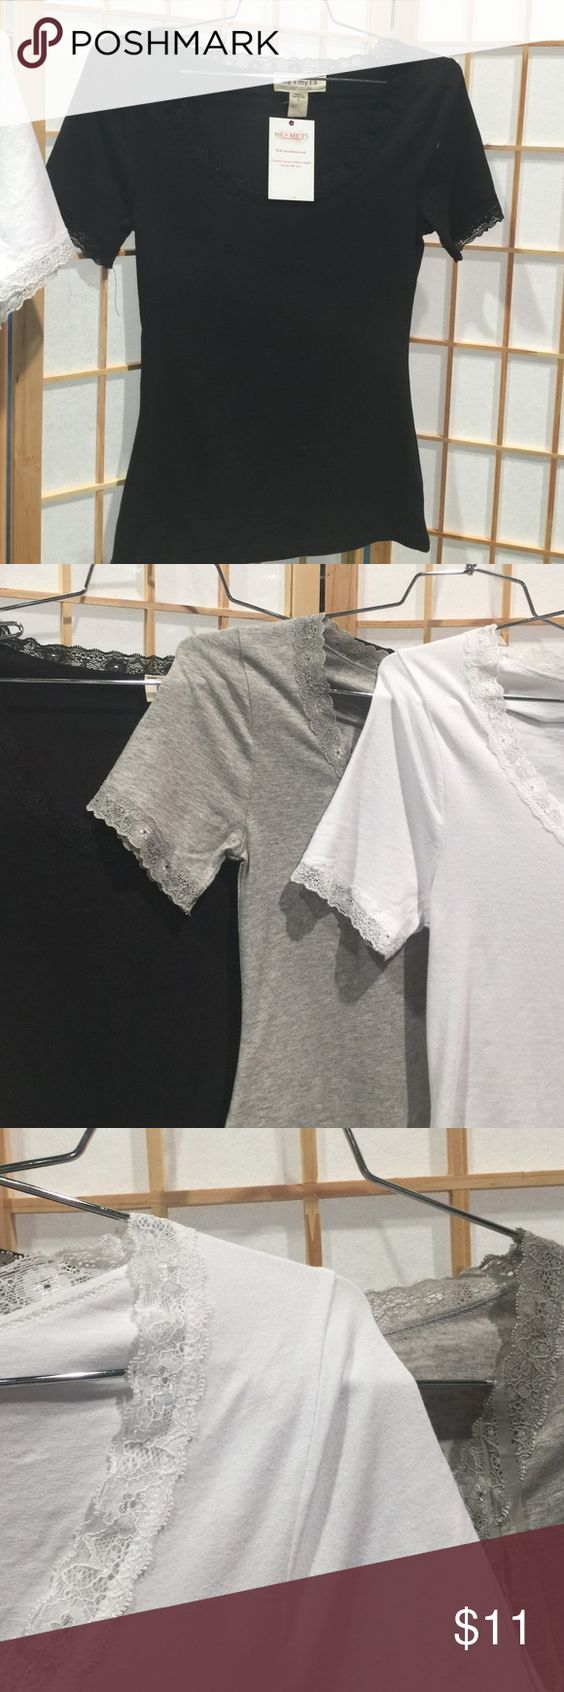 Ct-4267 Lace Trim Short Sleeve Tee Short Sleeve lace trim scoop neck tee. Available in white, black and heather grey. Me & My T's Tops Tees - Short Sleeve